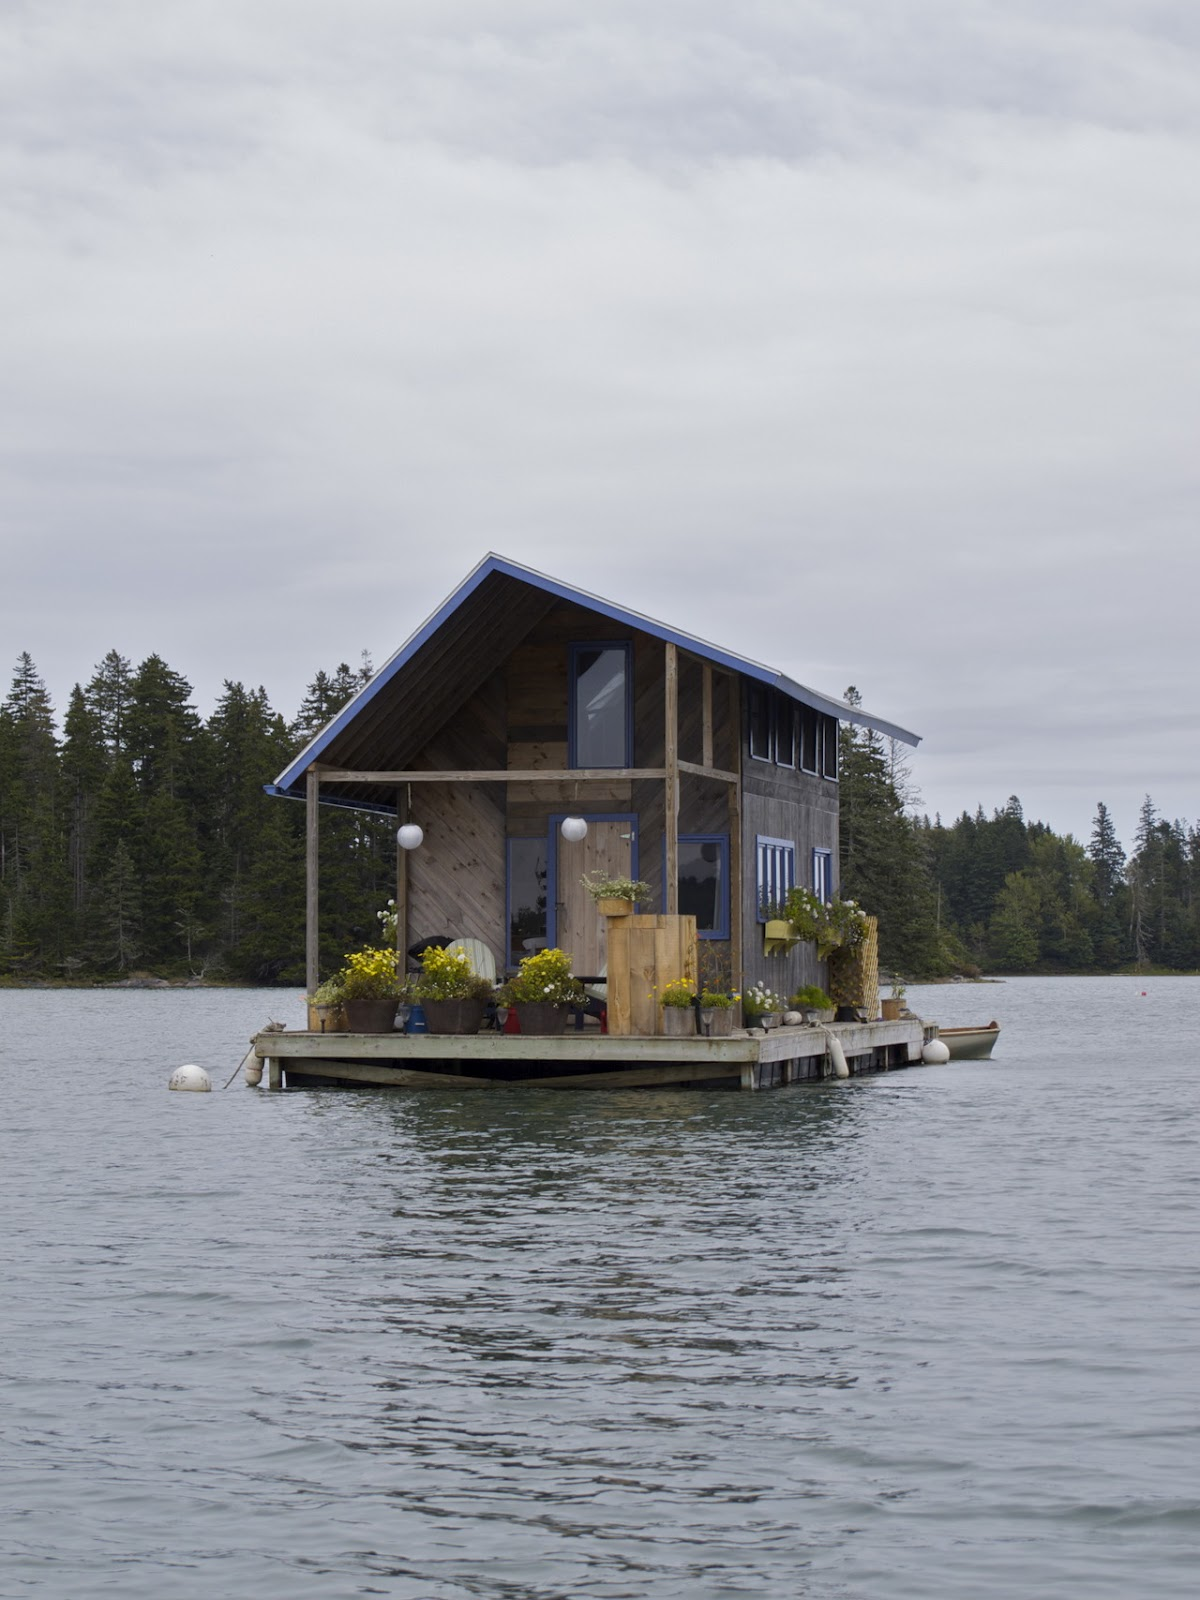 Honey I Shrunk The House: Floating house